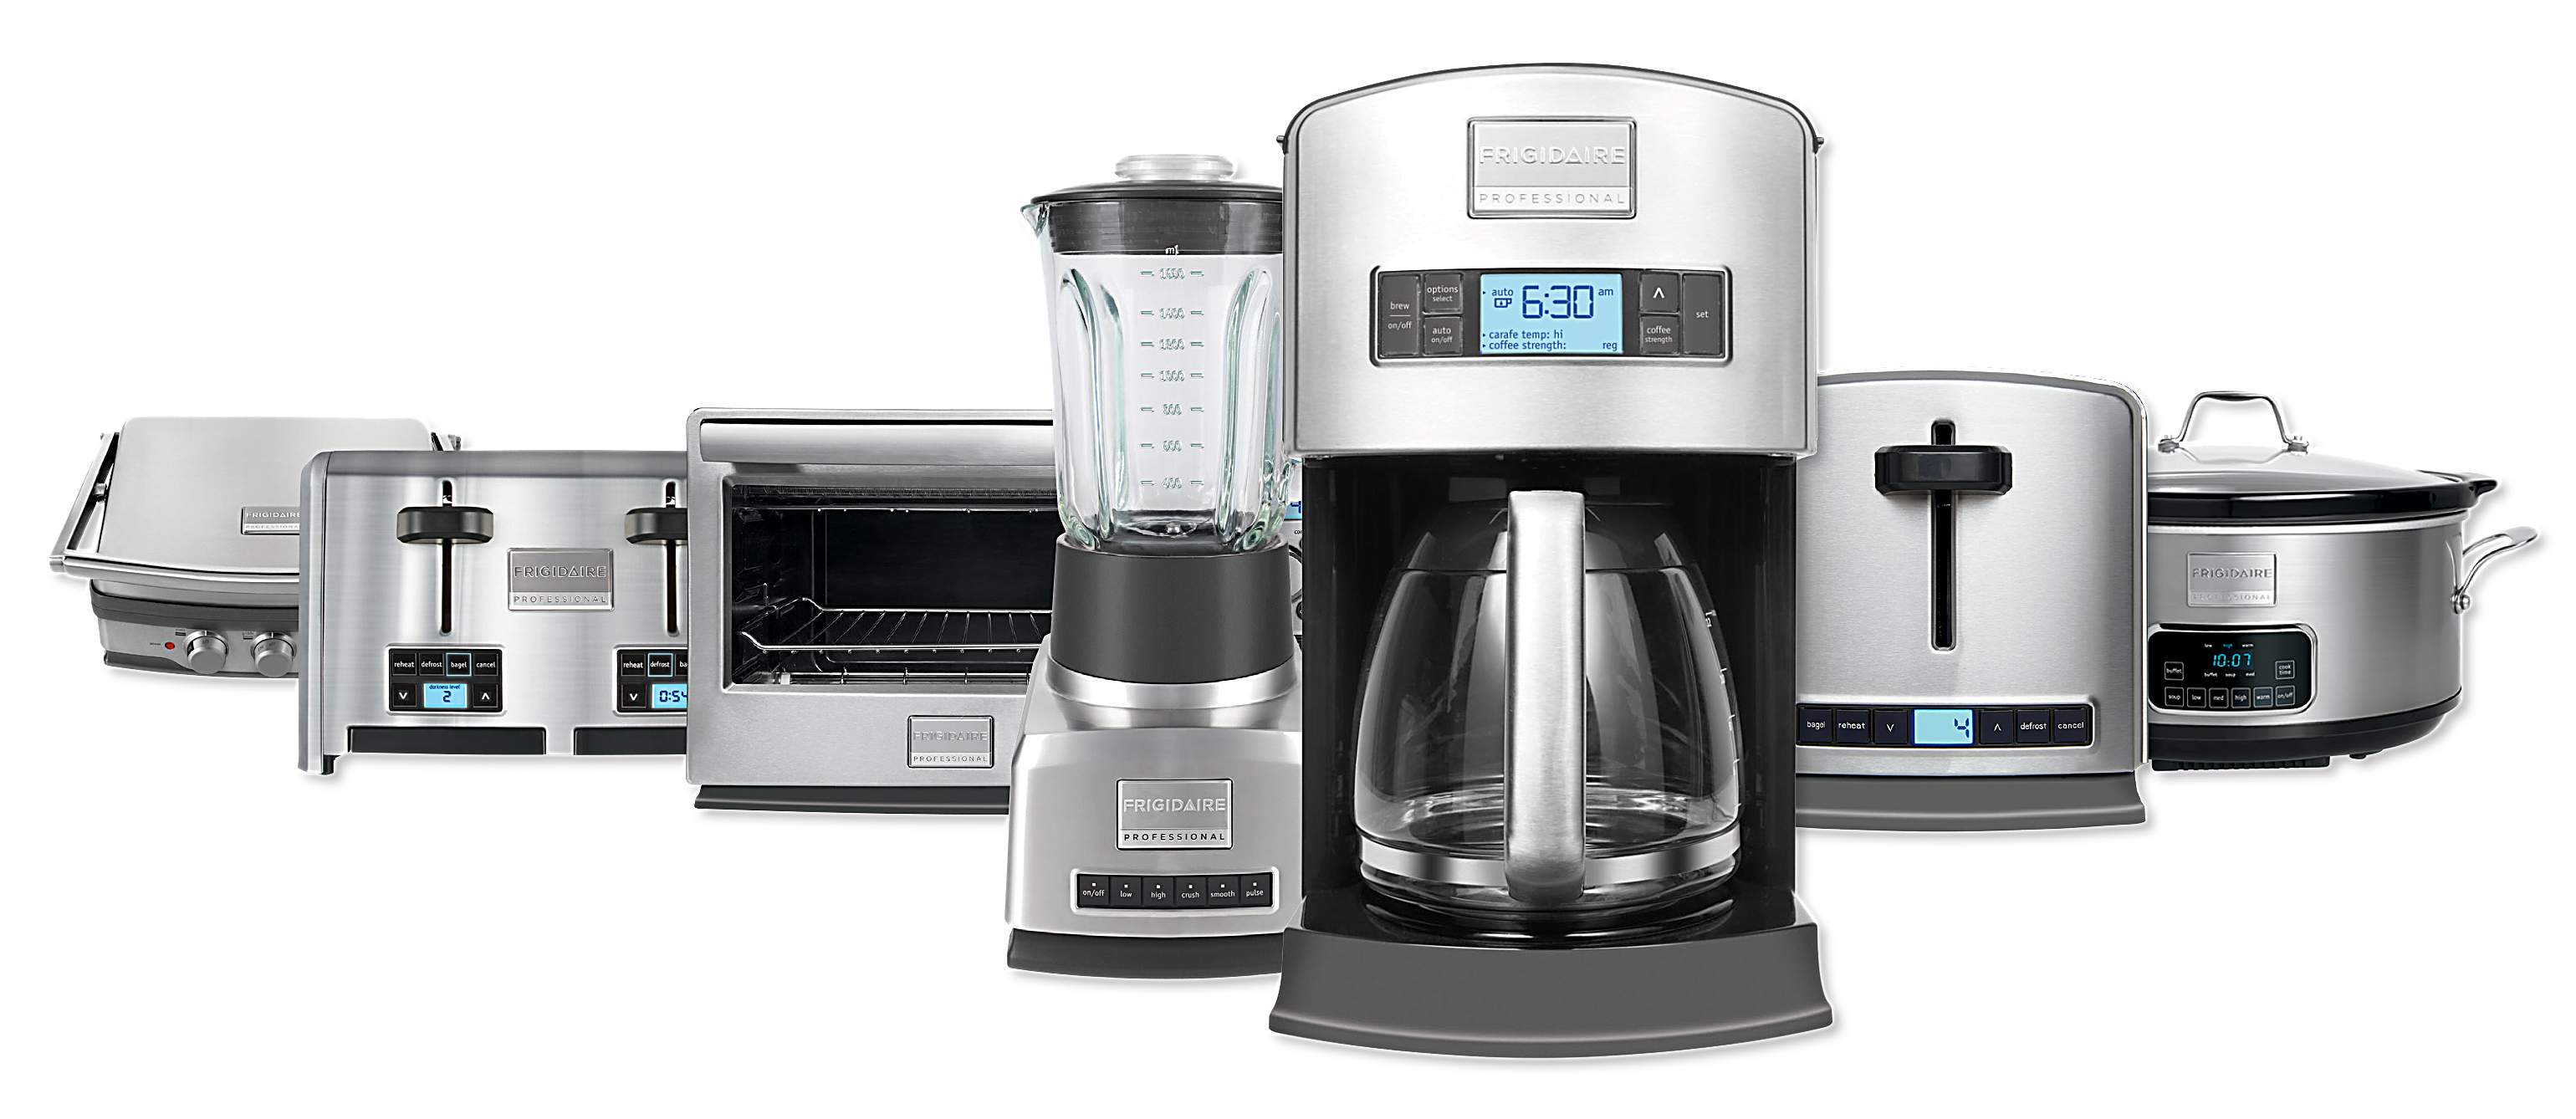 What power rating are our camping appliances and where for Kitchen appliance comparison sites